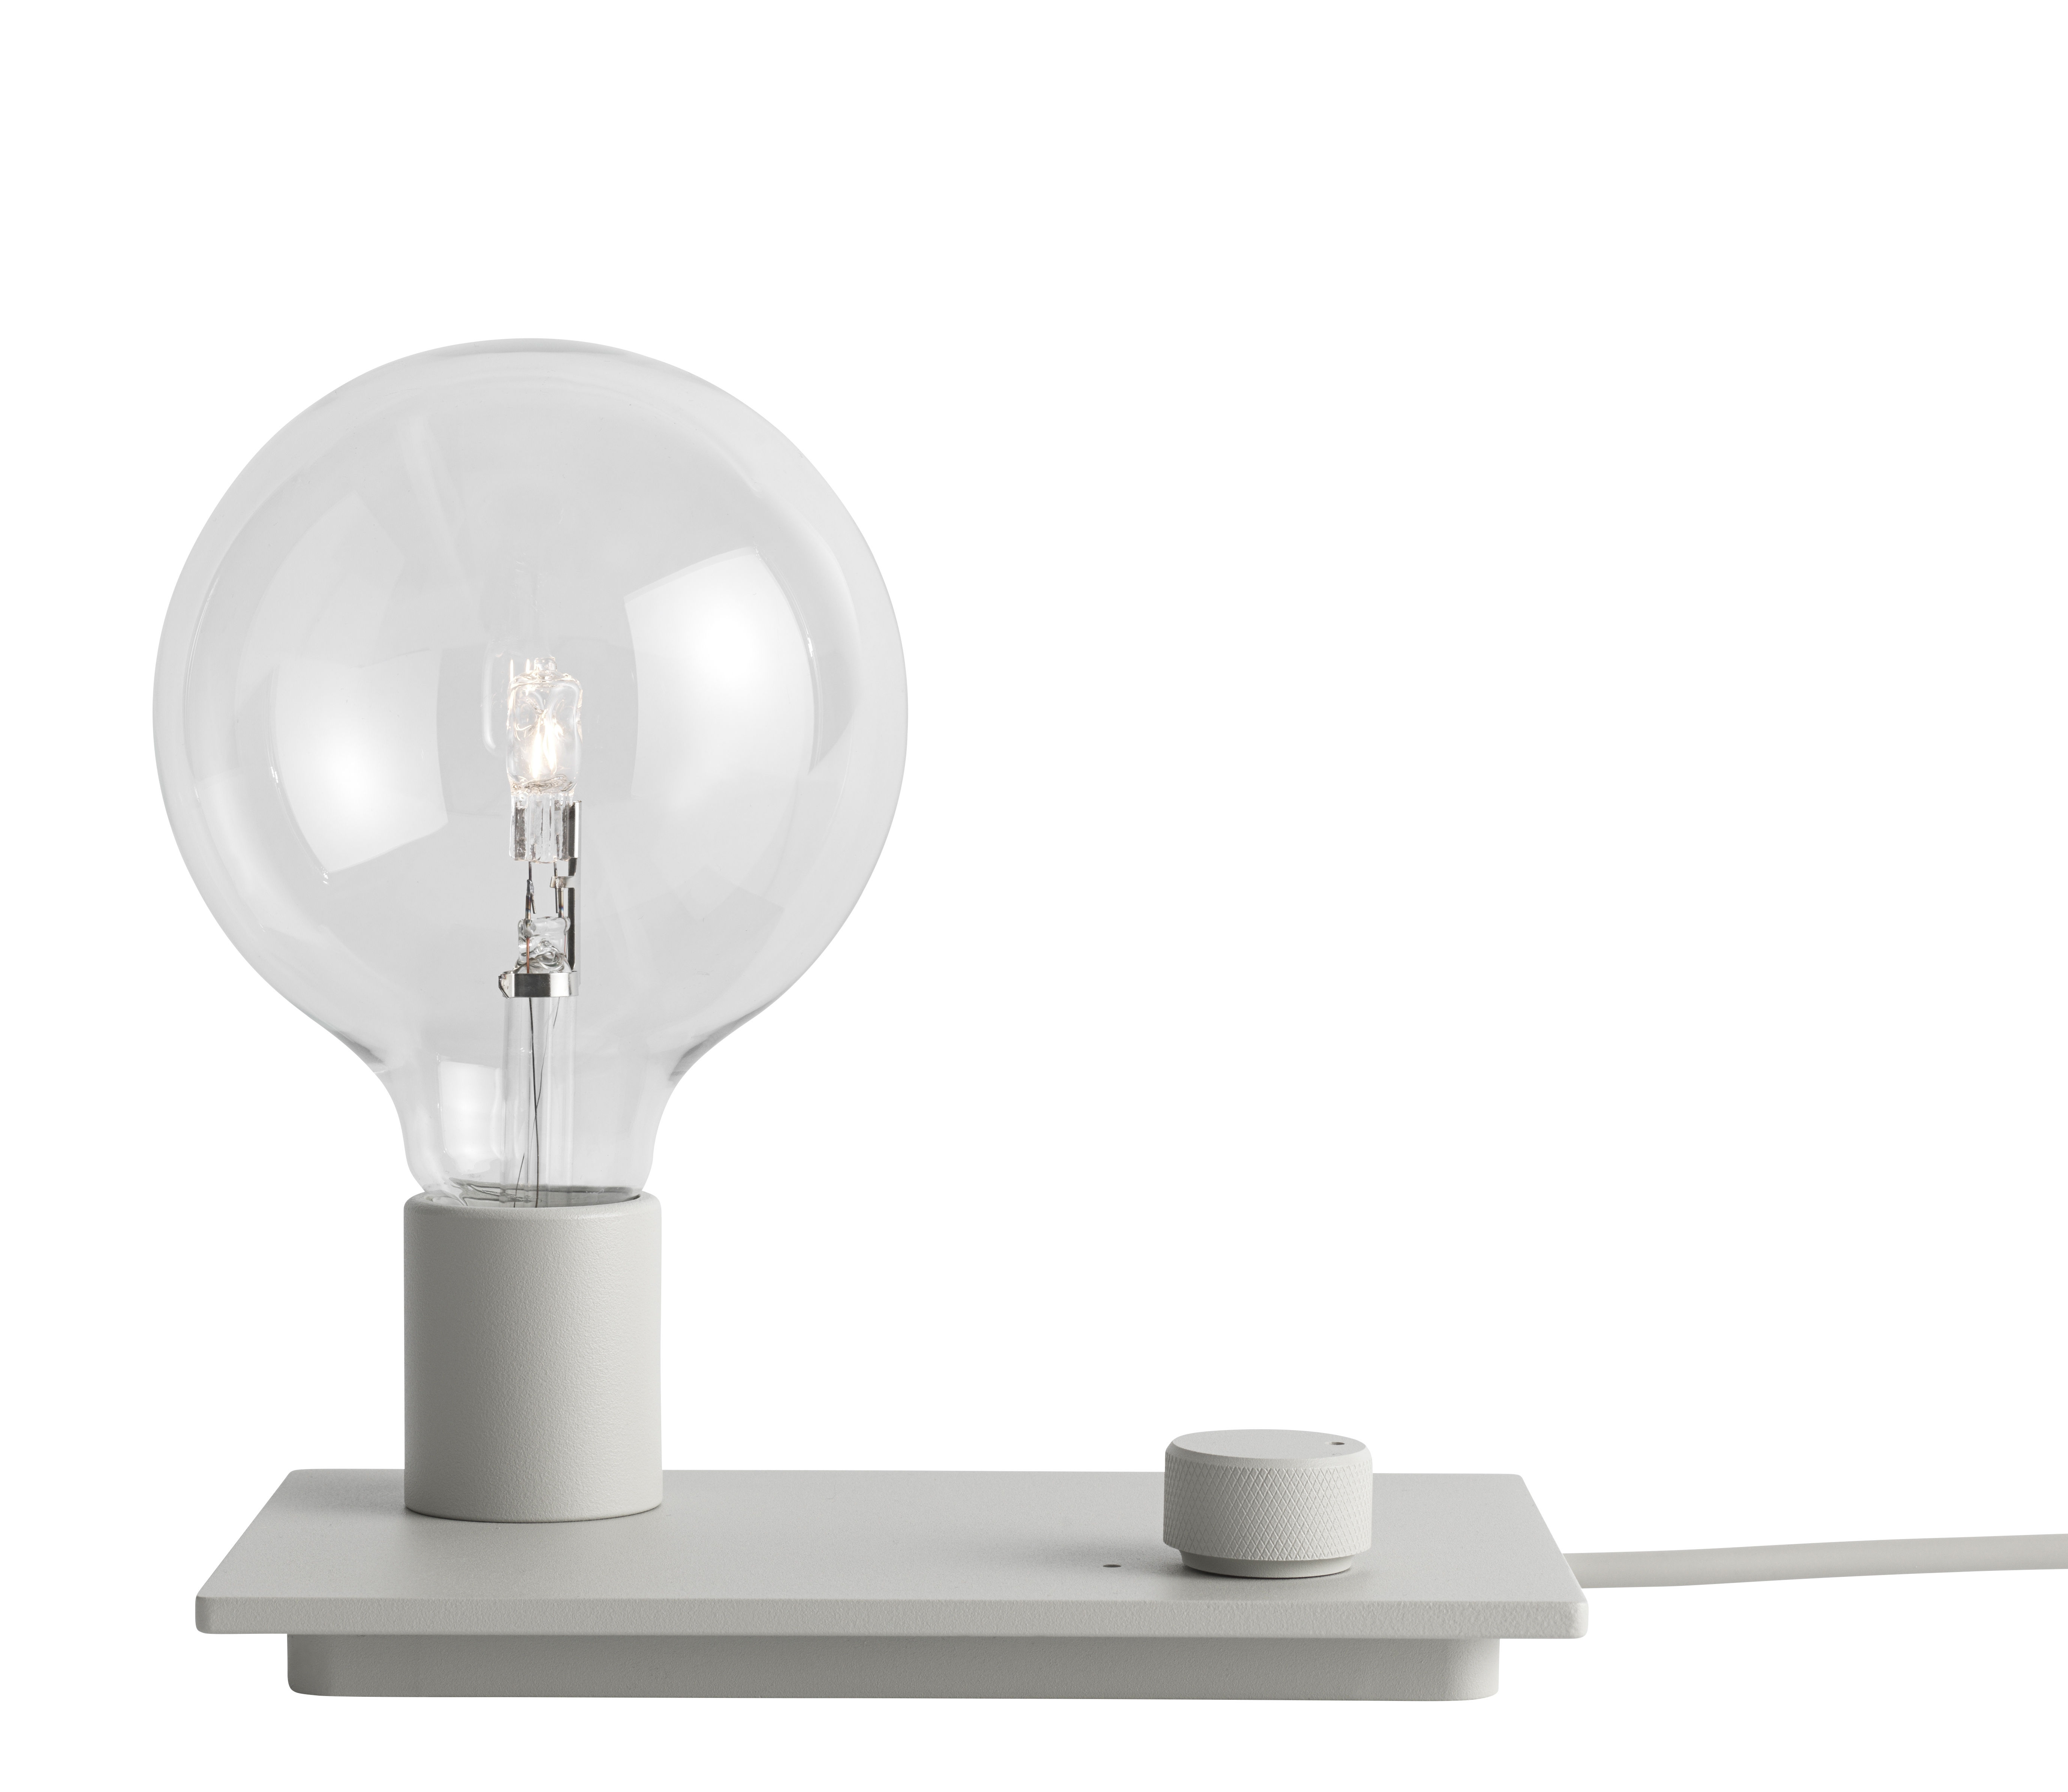 Desk Lamp With Dimmer : Control table lamp dimmer grey by muuto